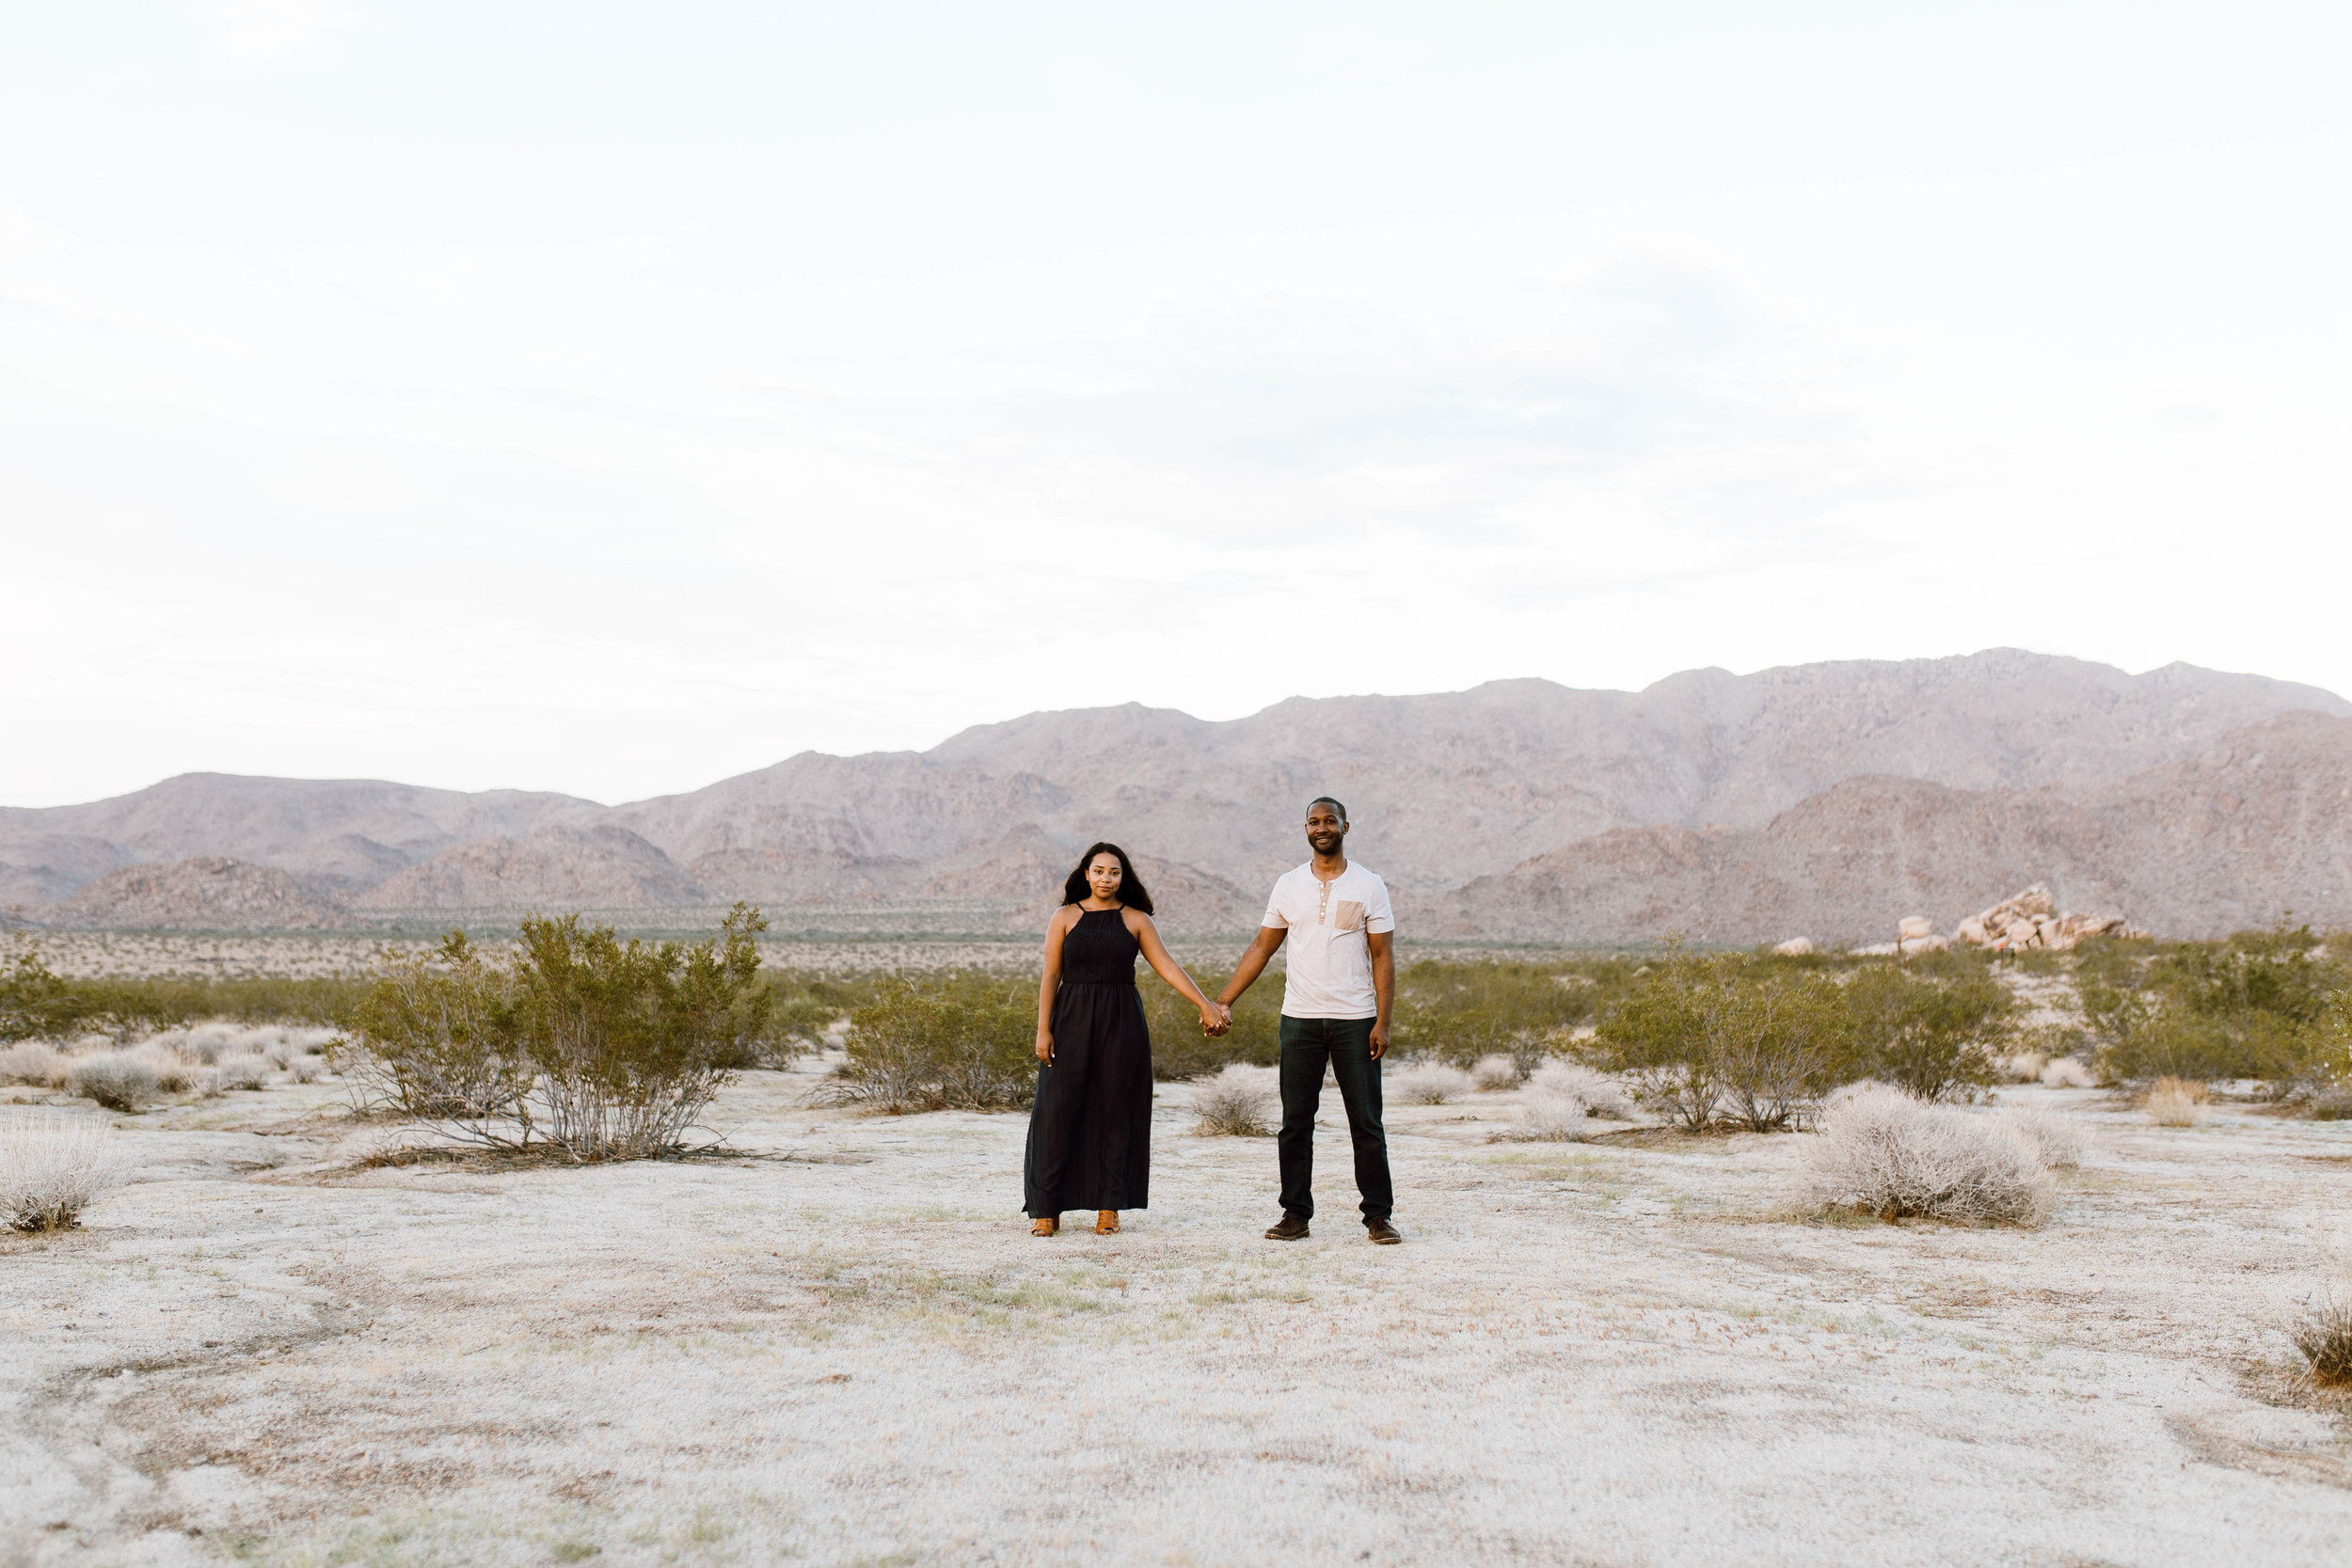 Joshua Tree Desert Couple Photography